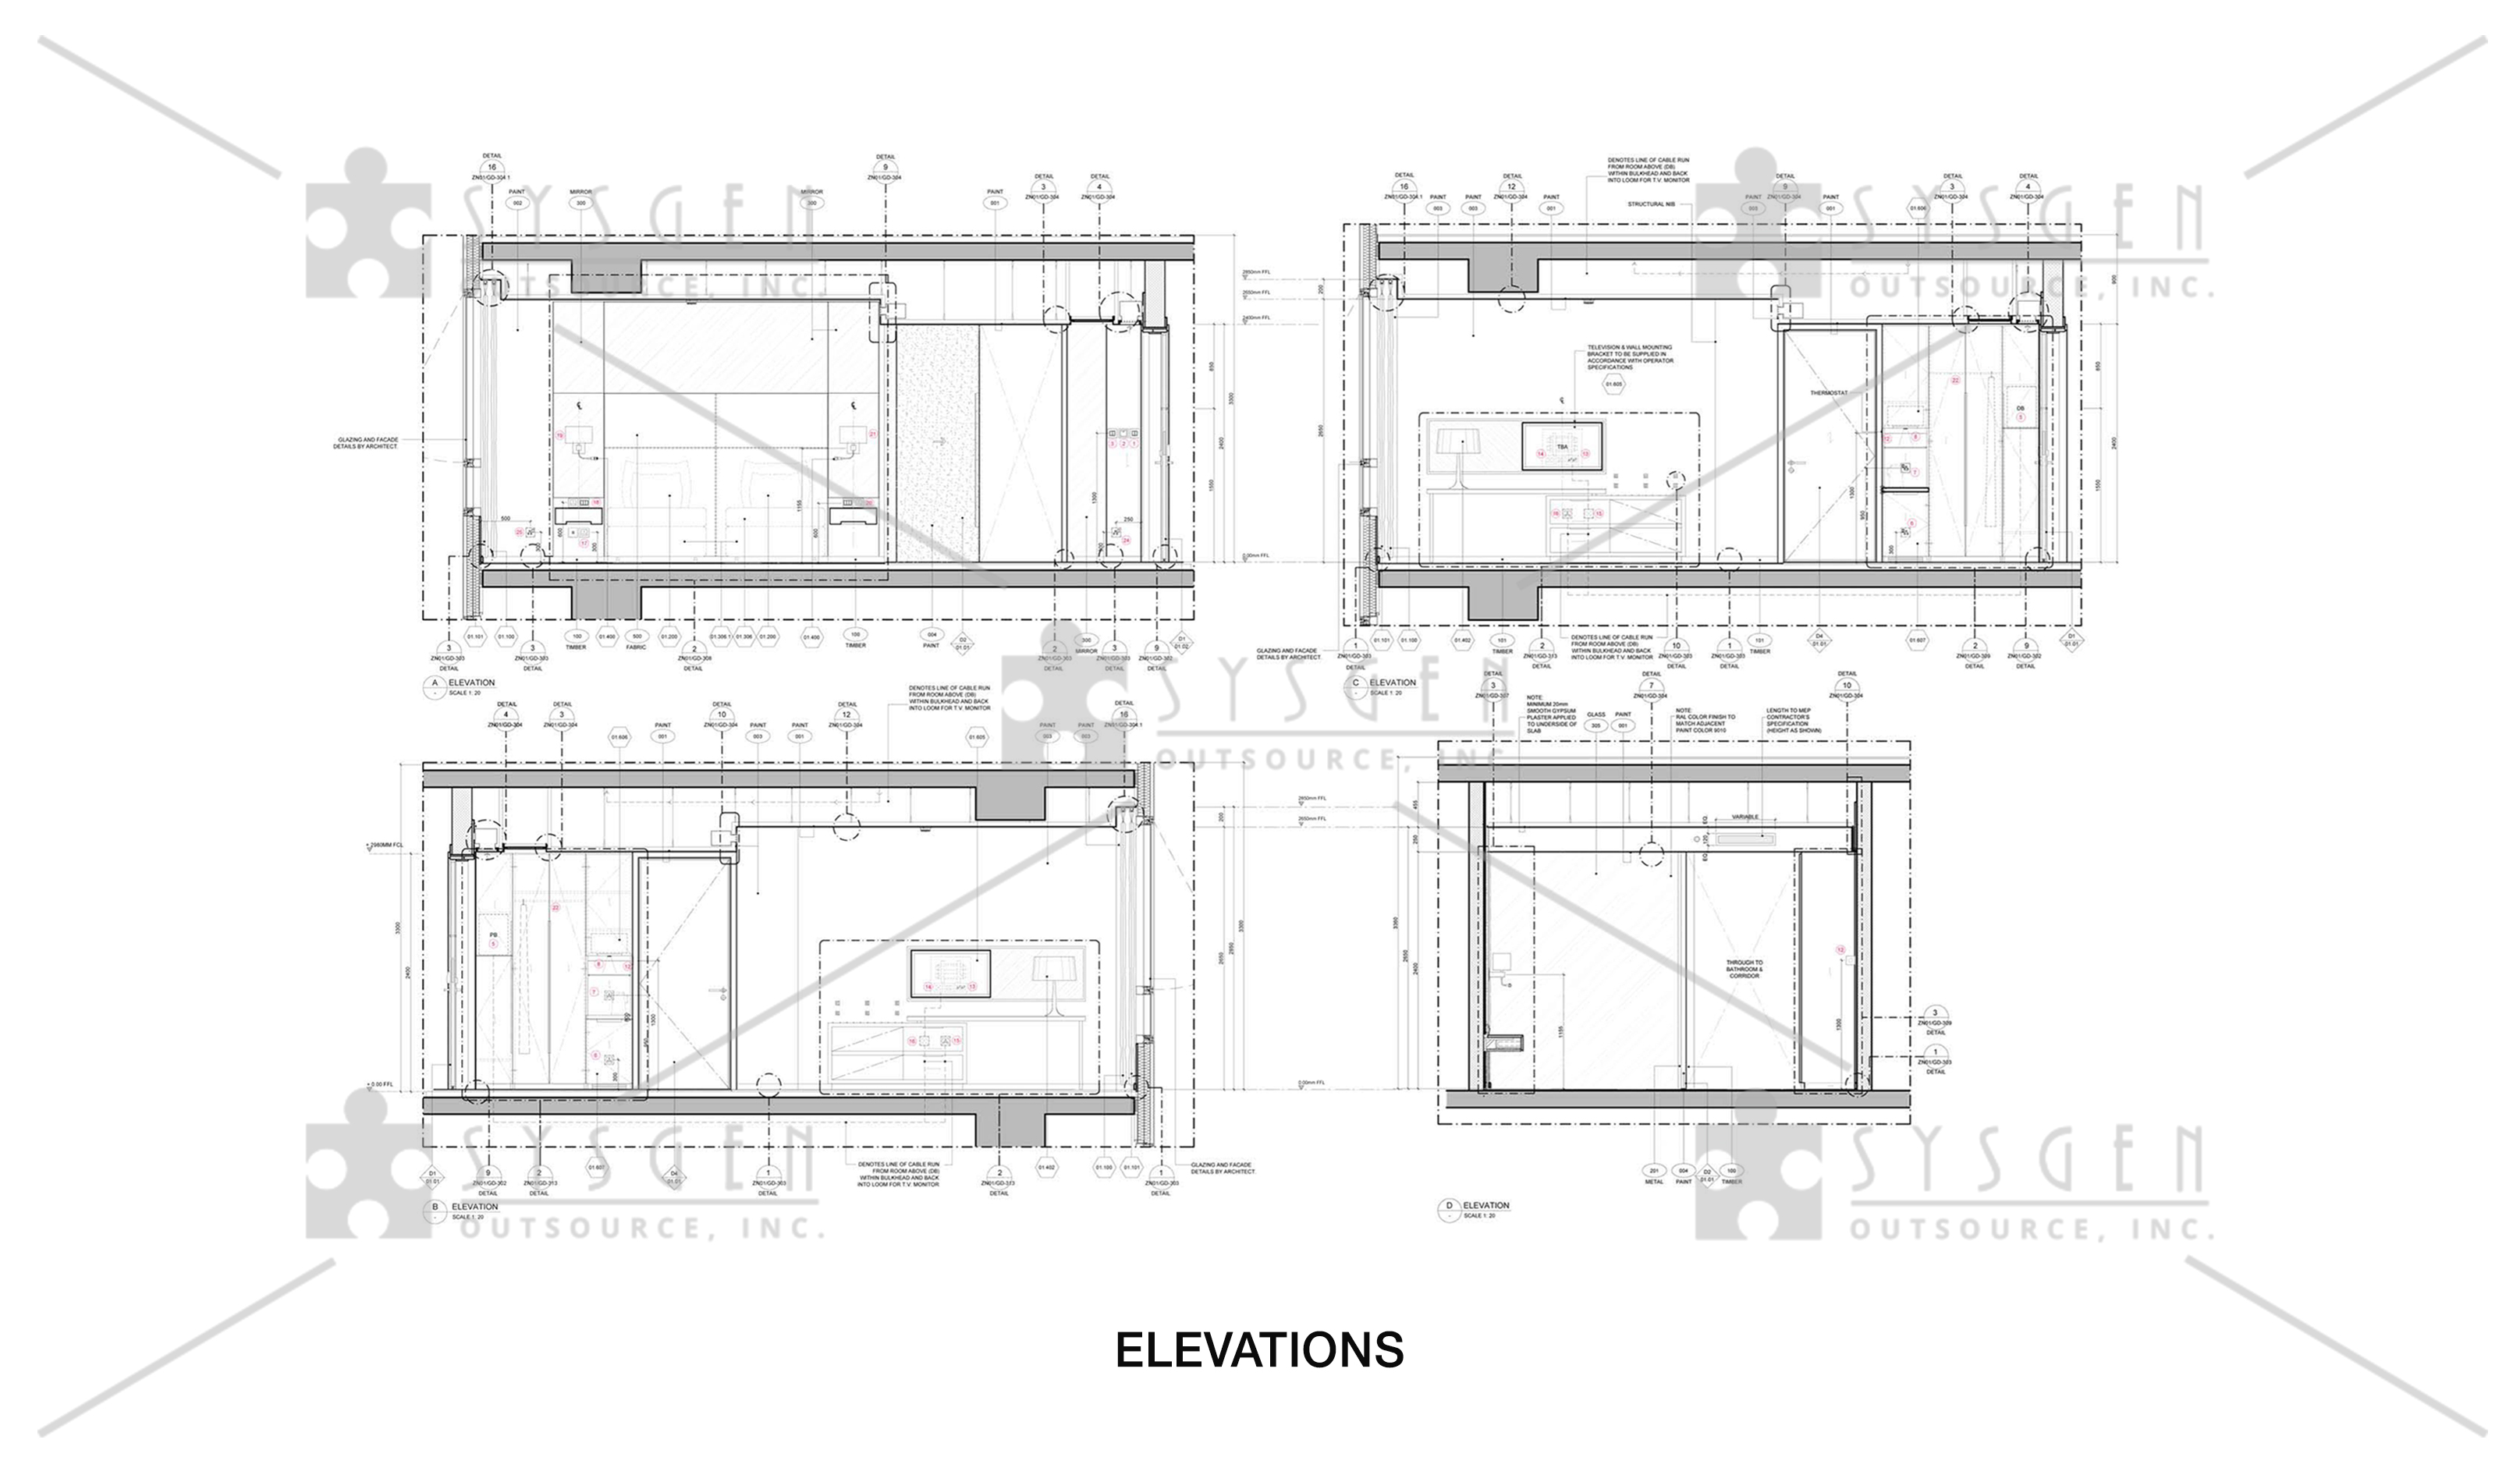 sysgen-outsource-cad-outsourcing-services-interior-design-hotel2